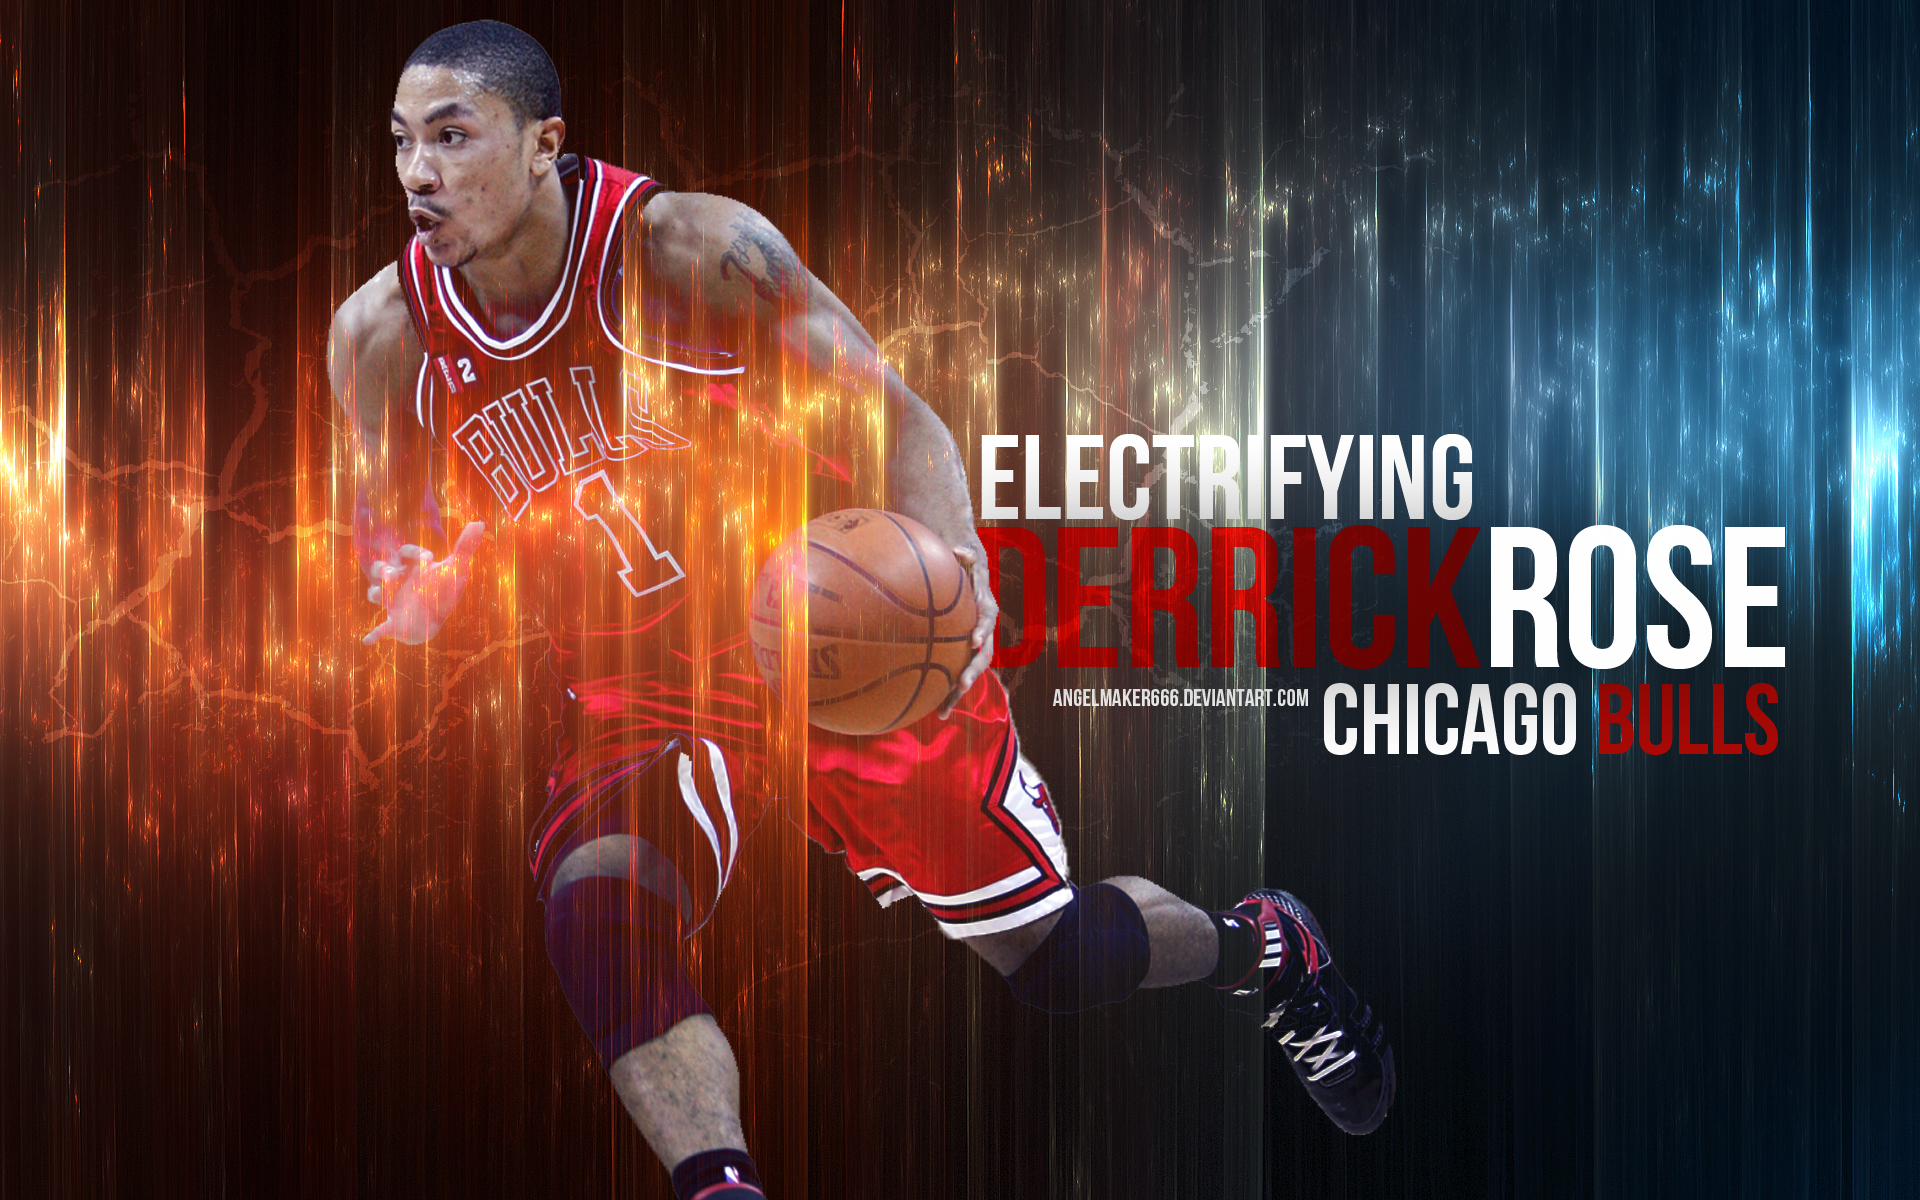 Le Derrick Rose Ultime Wallpaper Collection Journe sportive 1920x1200